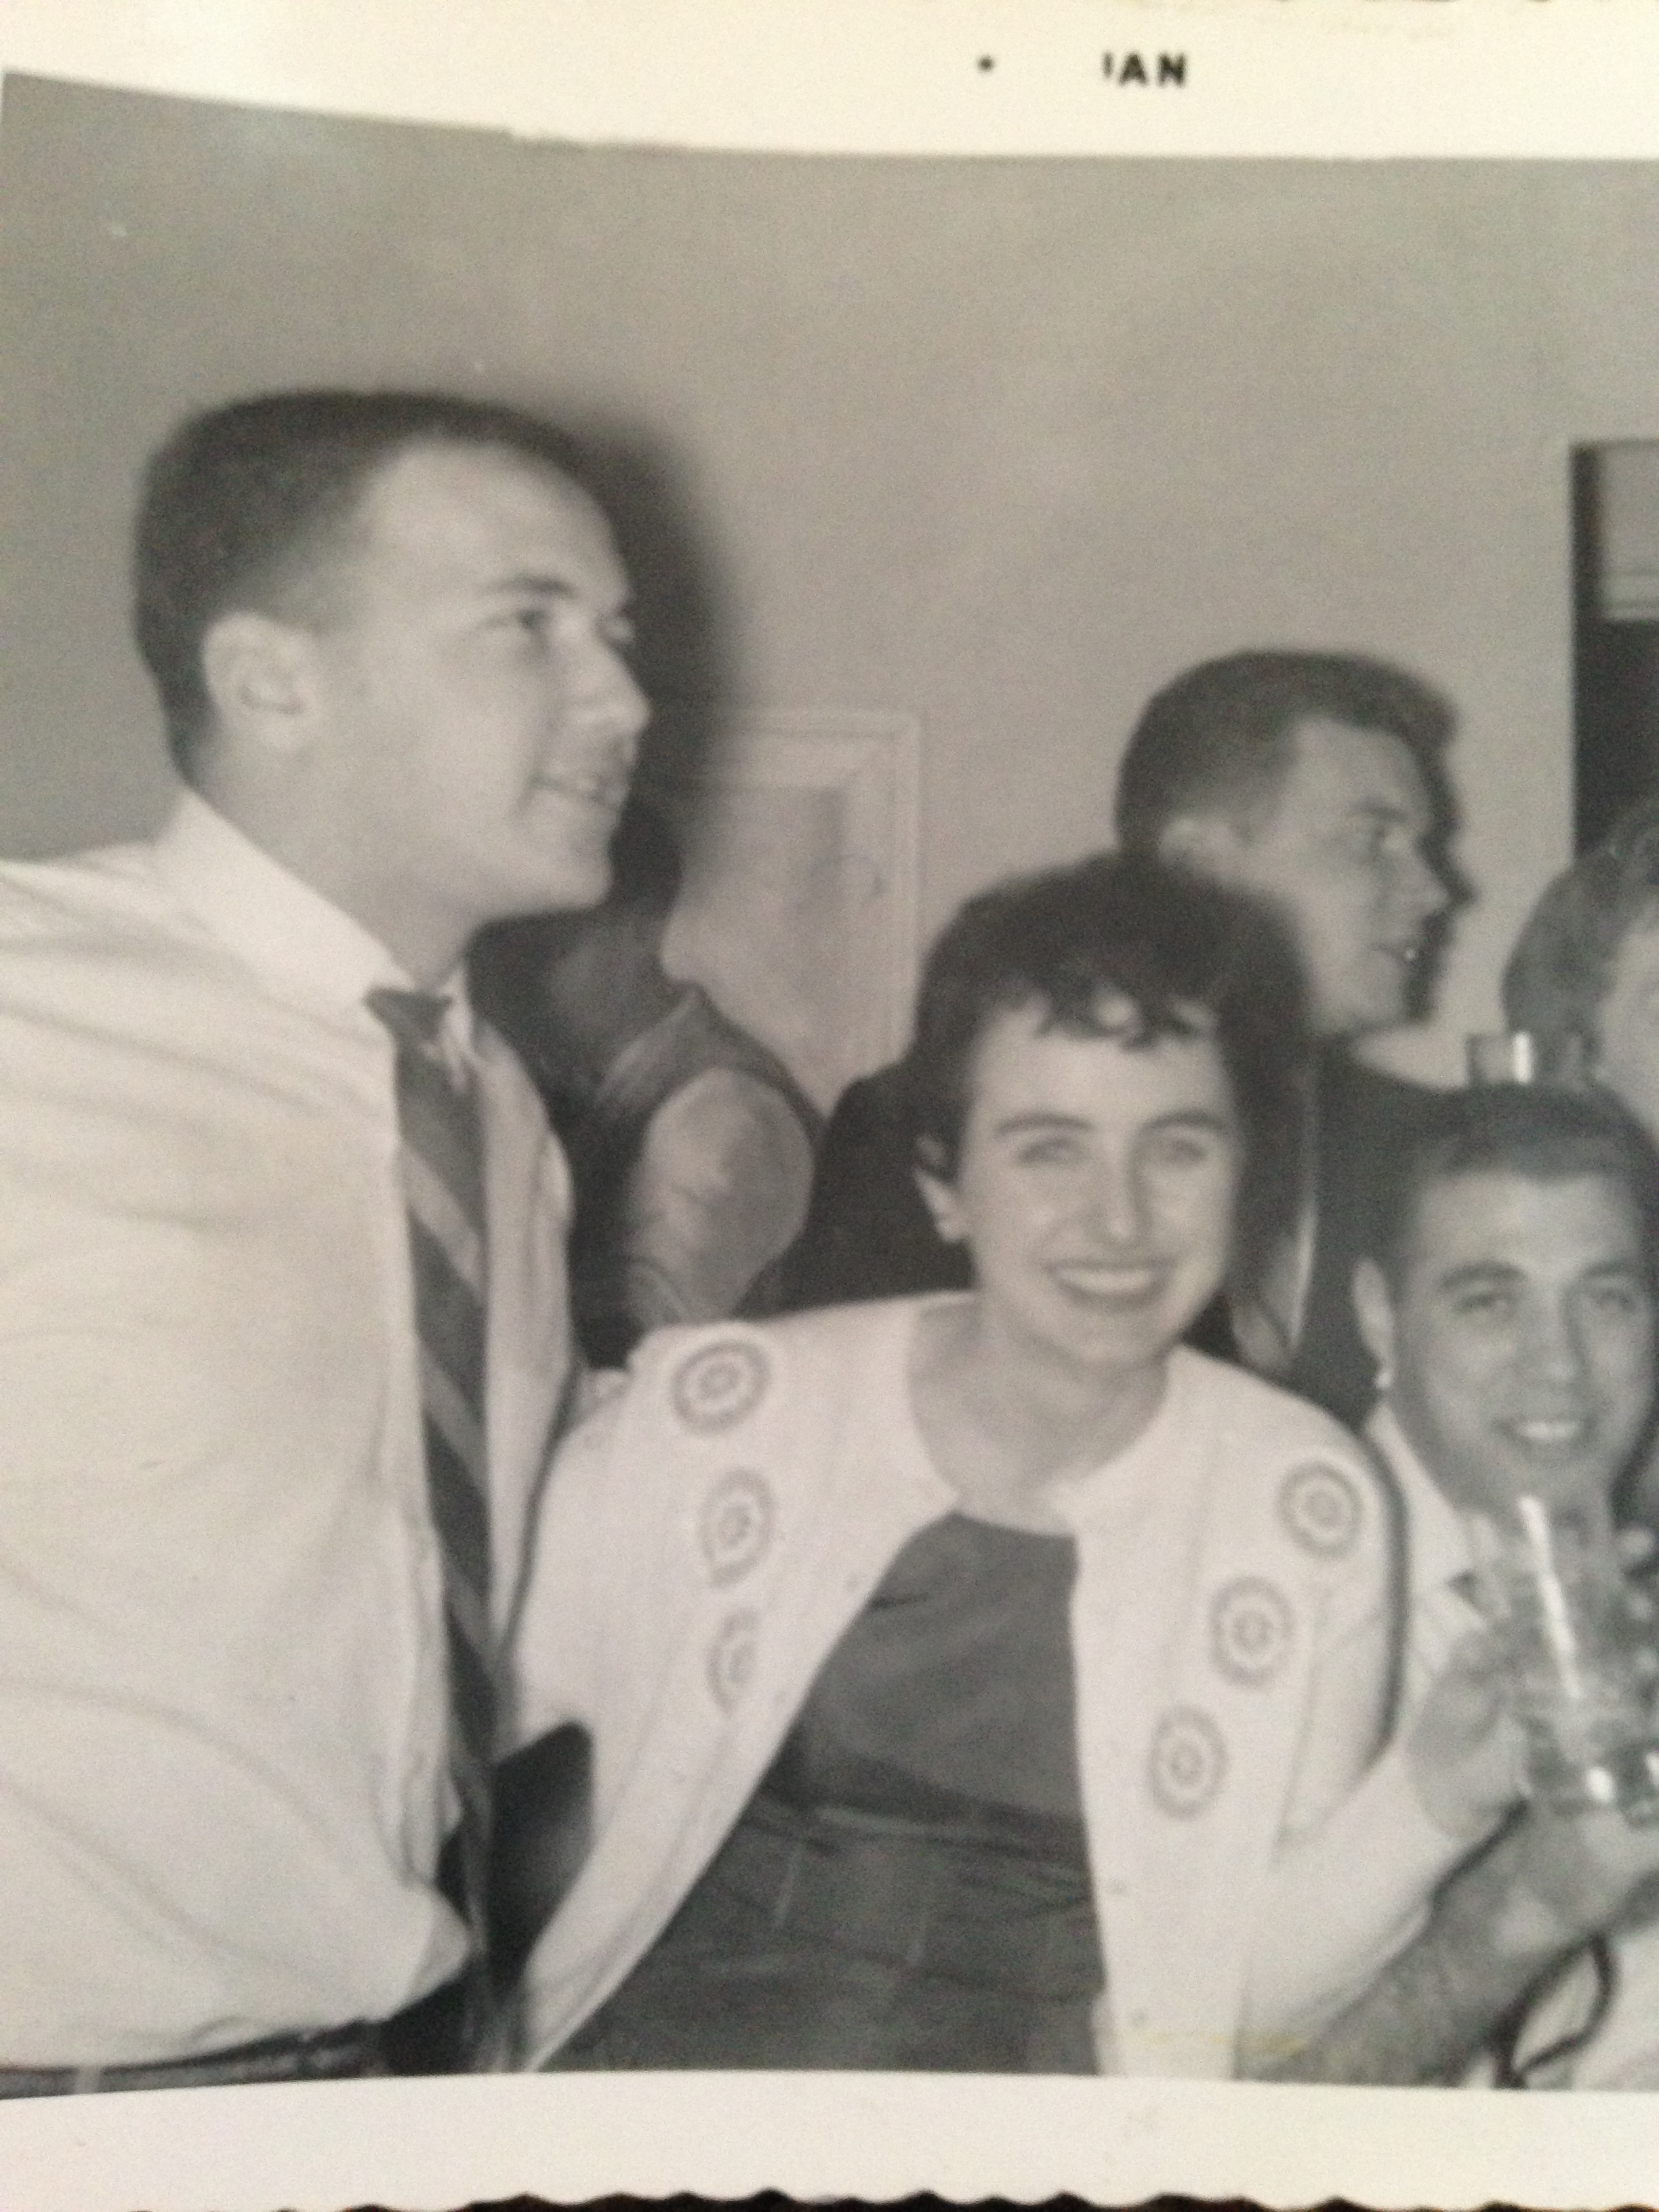 John Alexander Moran, far left, early 1960s.